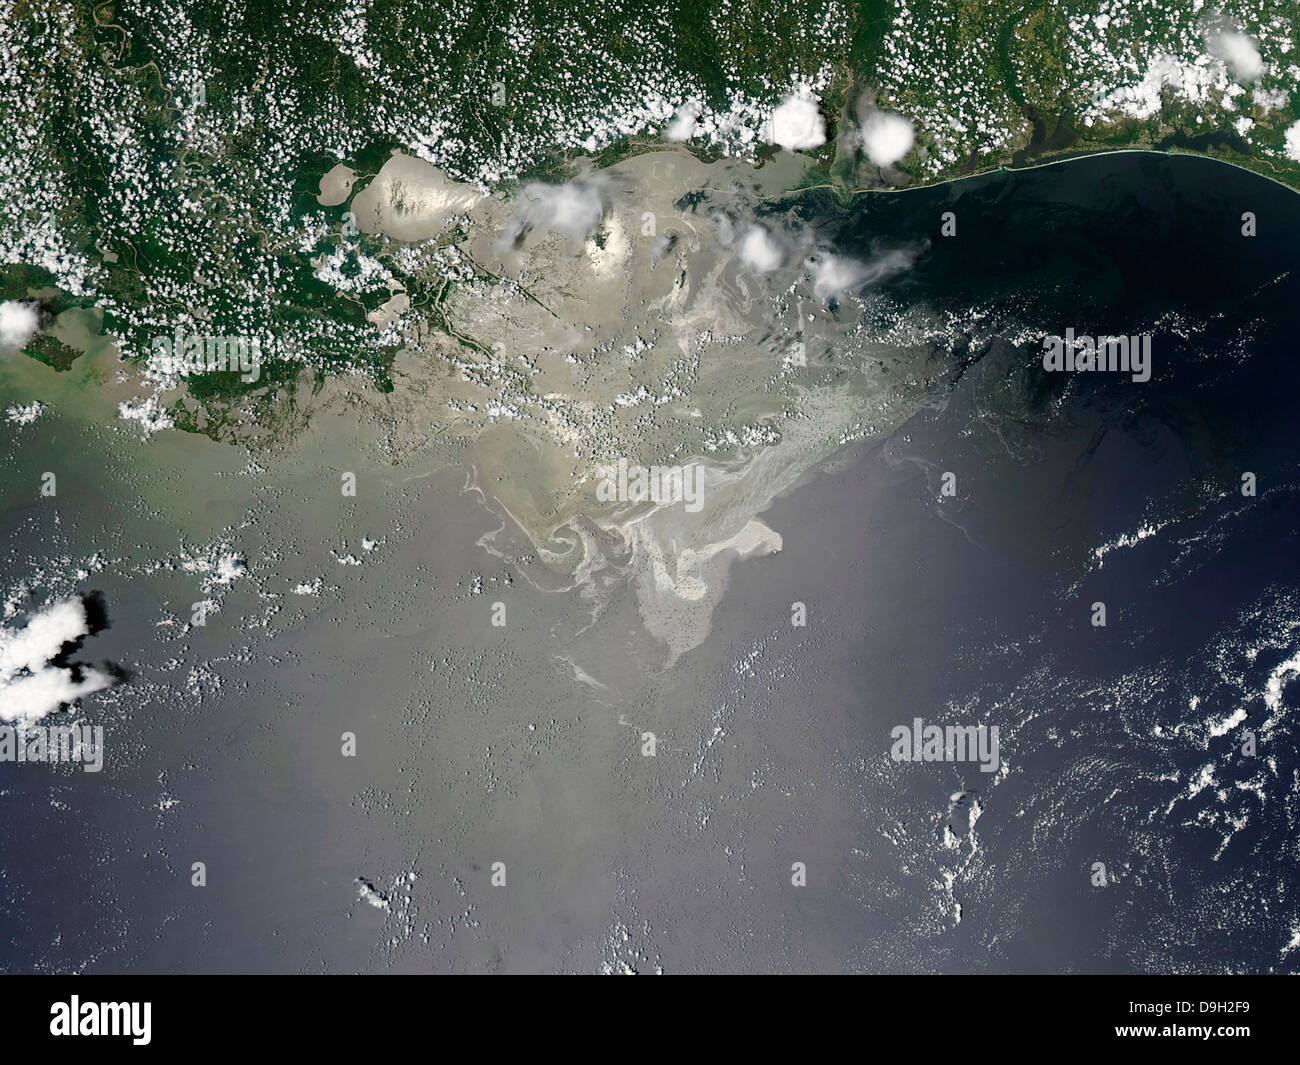 Oil slick in the Gulf of Mexico. - Stock Image